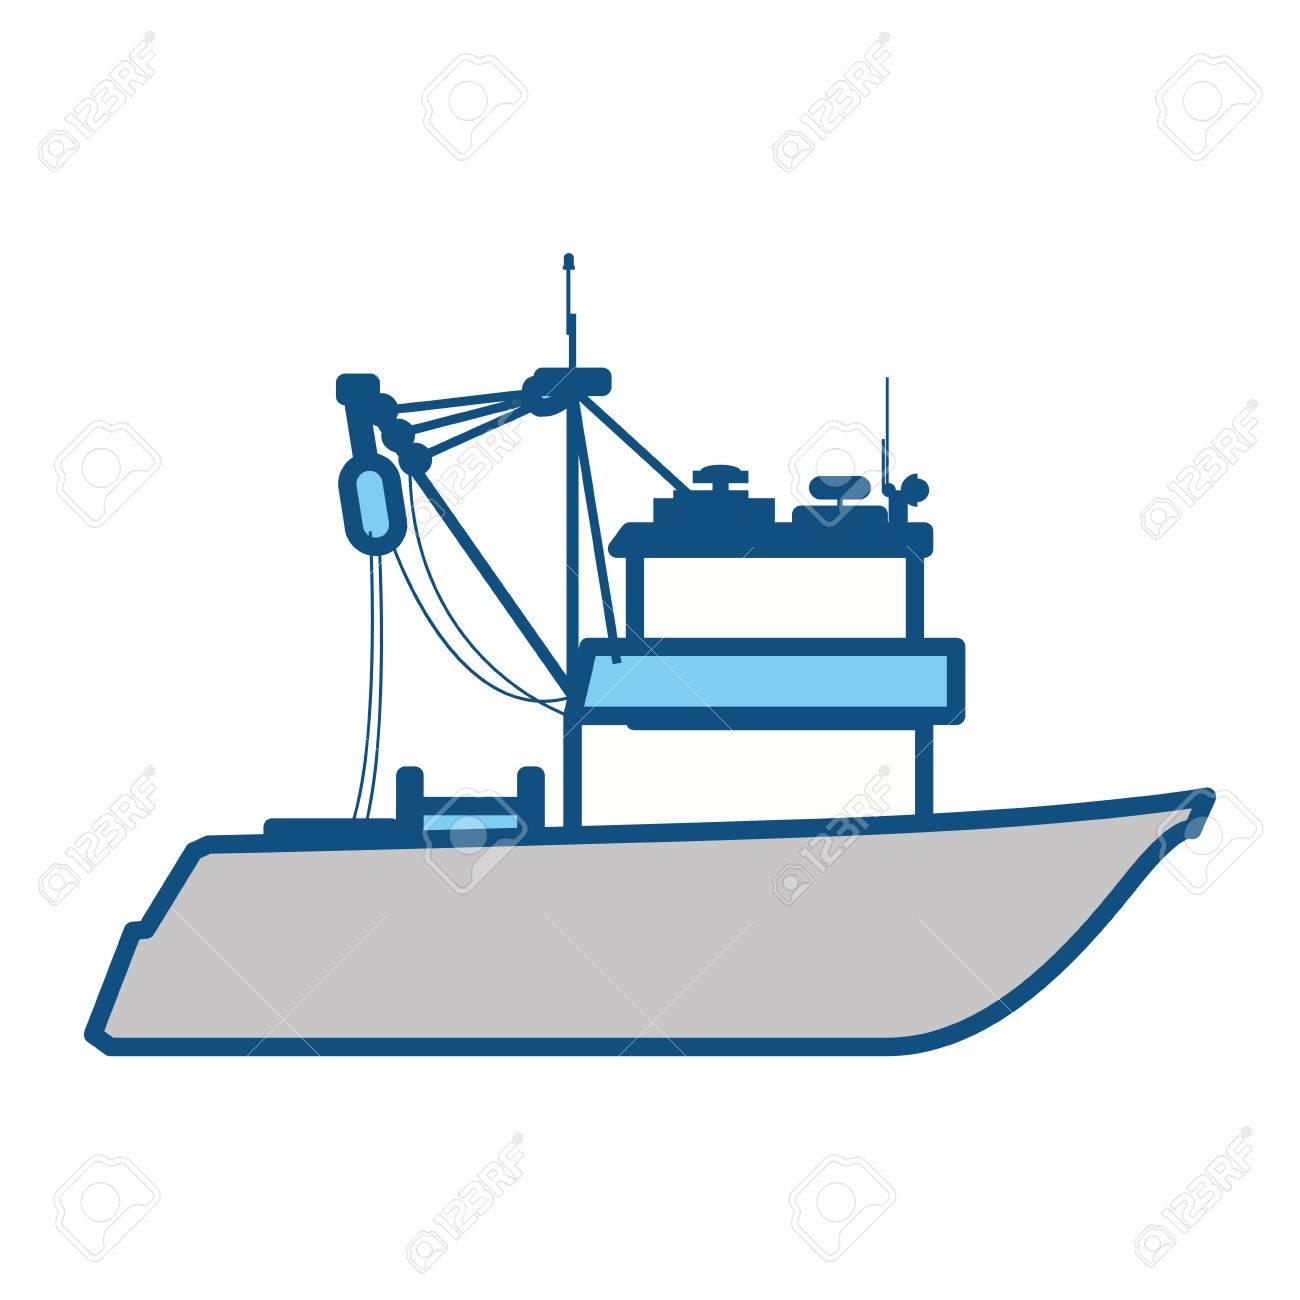 Fishing boat isolated icon vector illustration graphic design